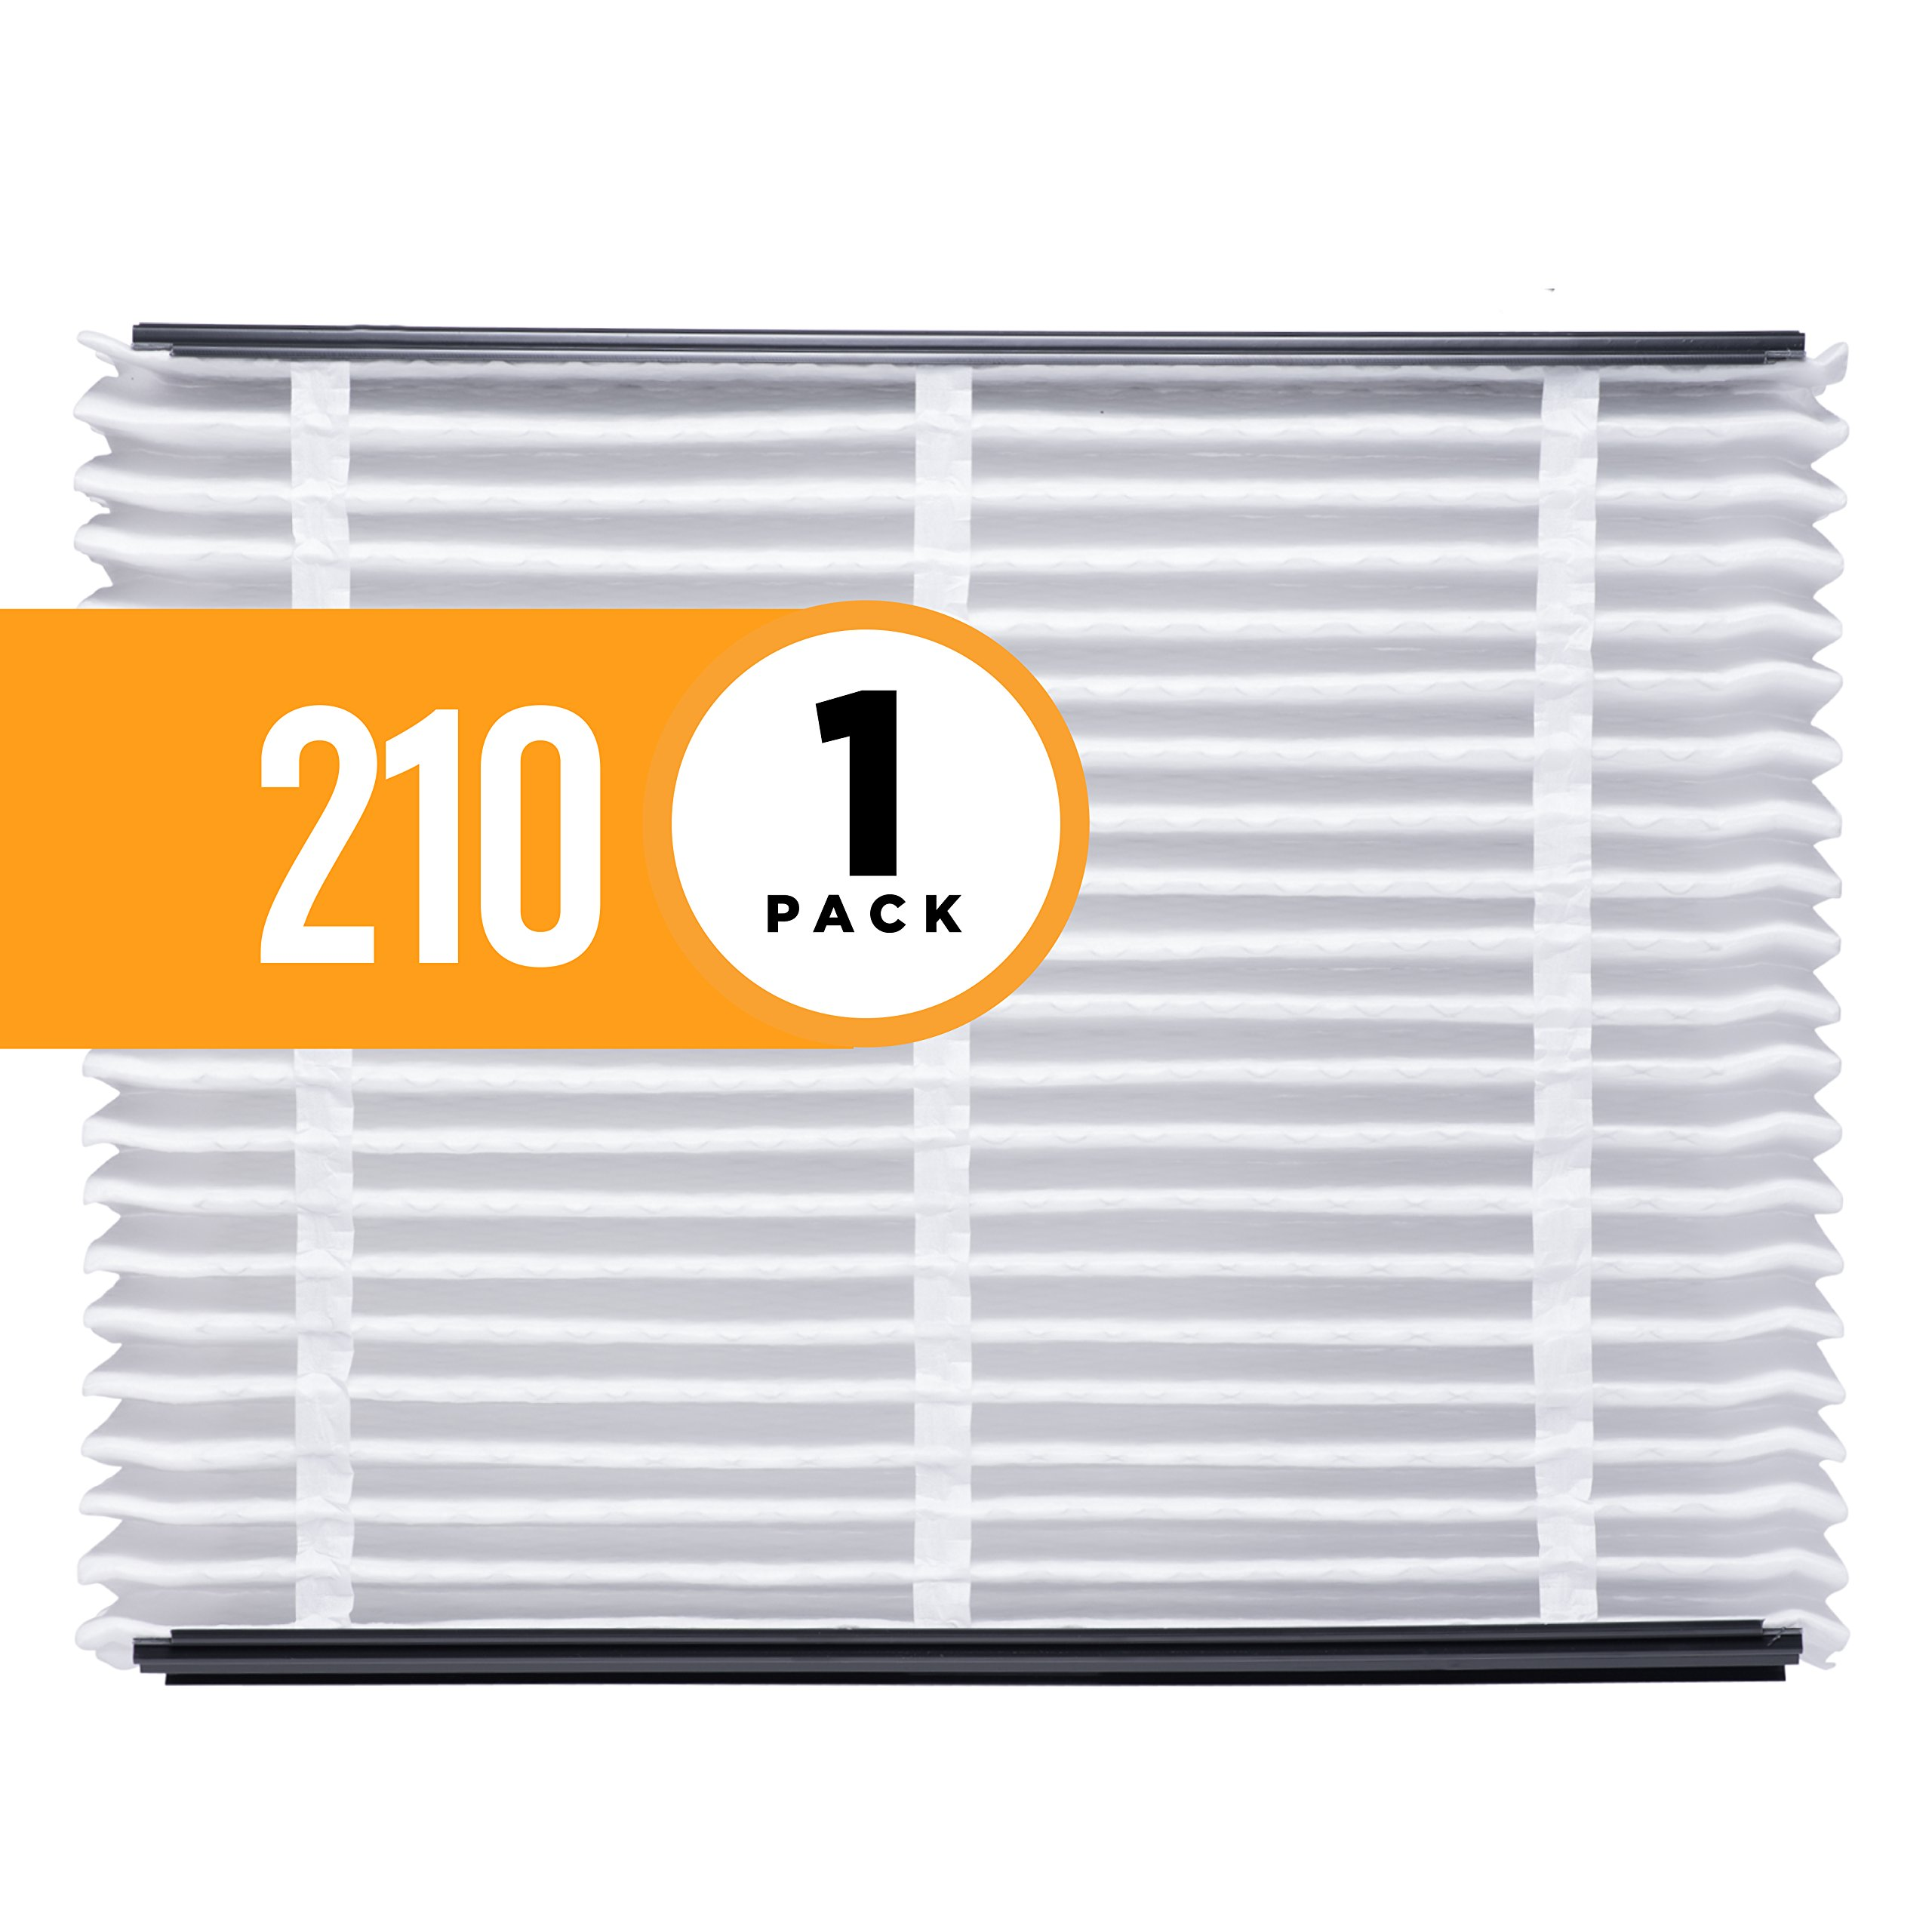 Aprilaire 210 Air Filter for Aprilaire Whole Home Air Purifiers, MERV 11 (Pack of 1) by Aprilaire